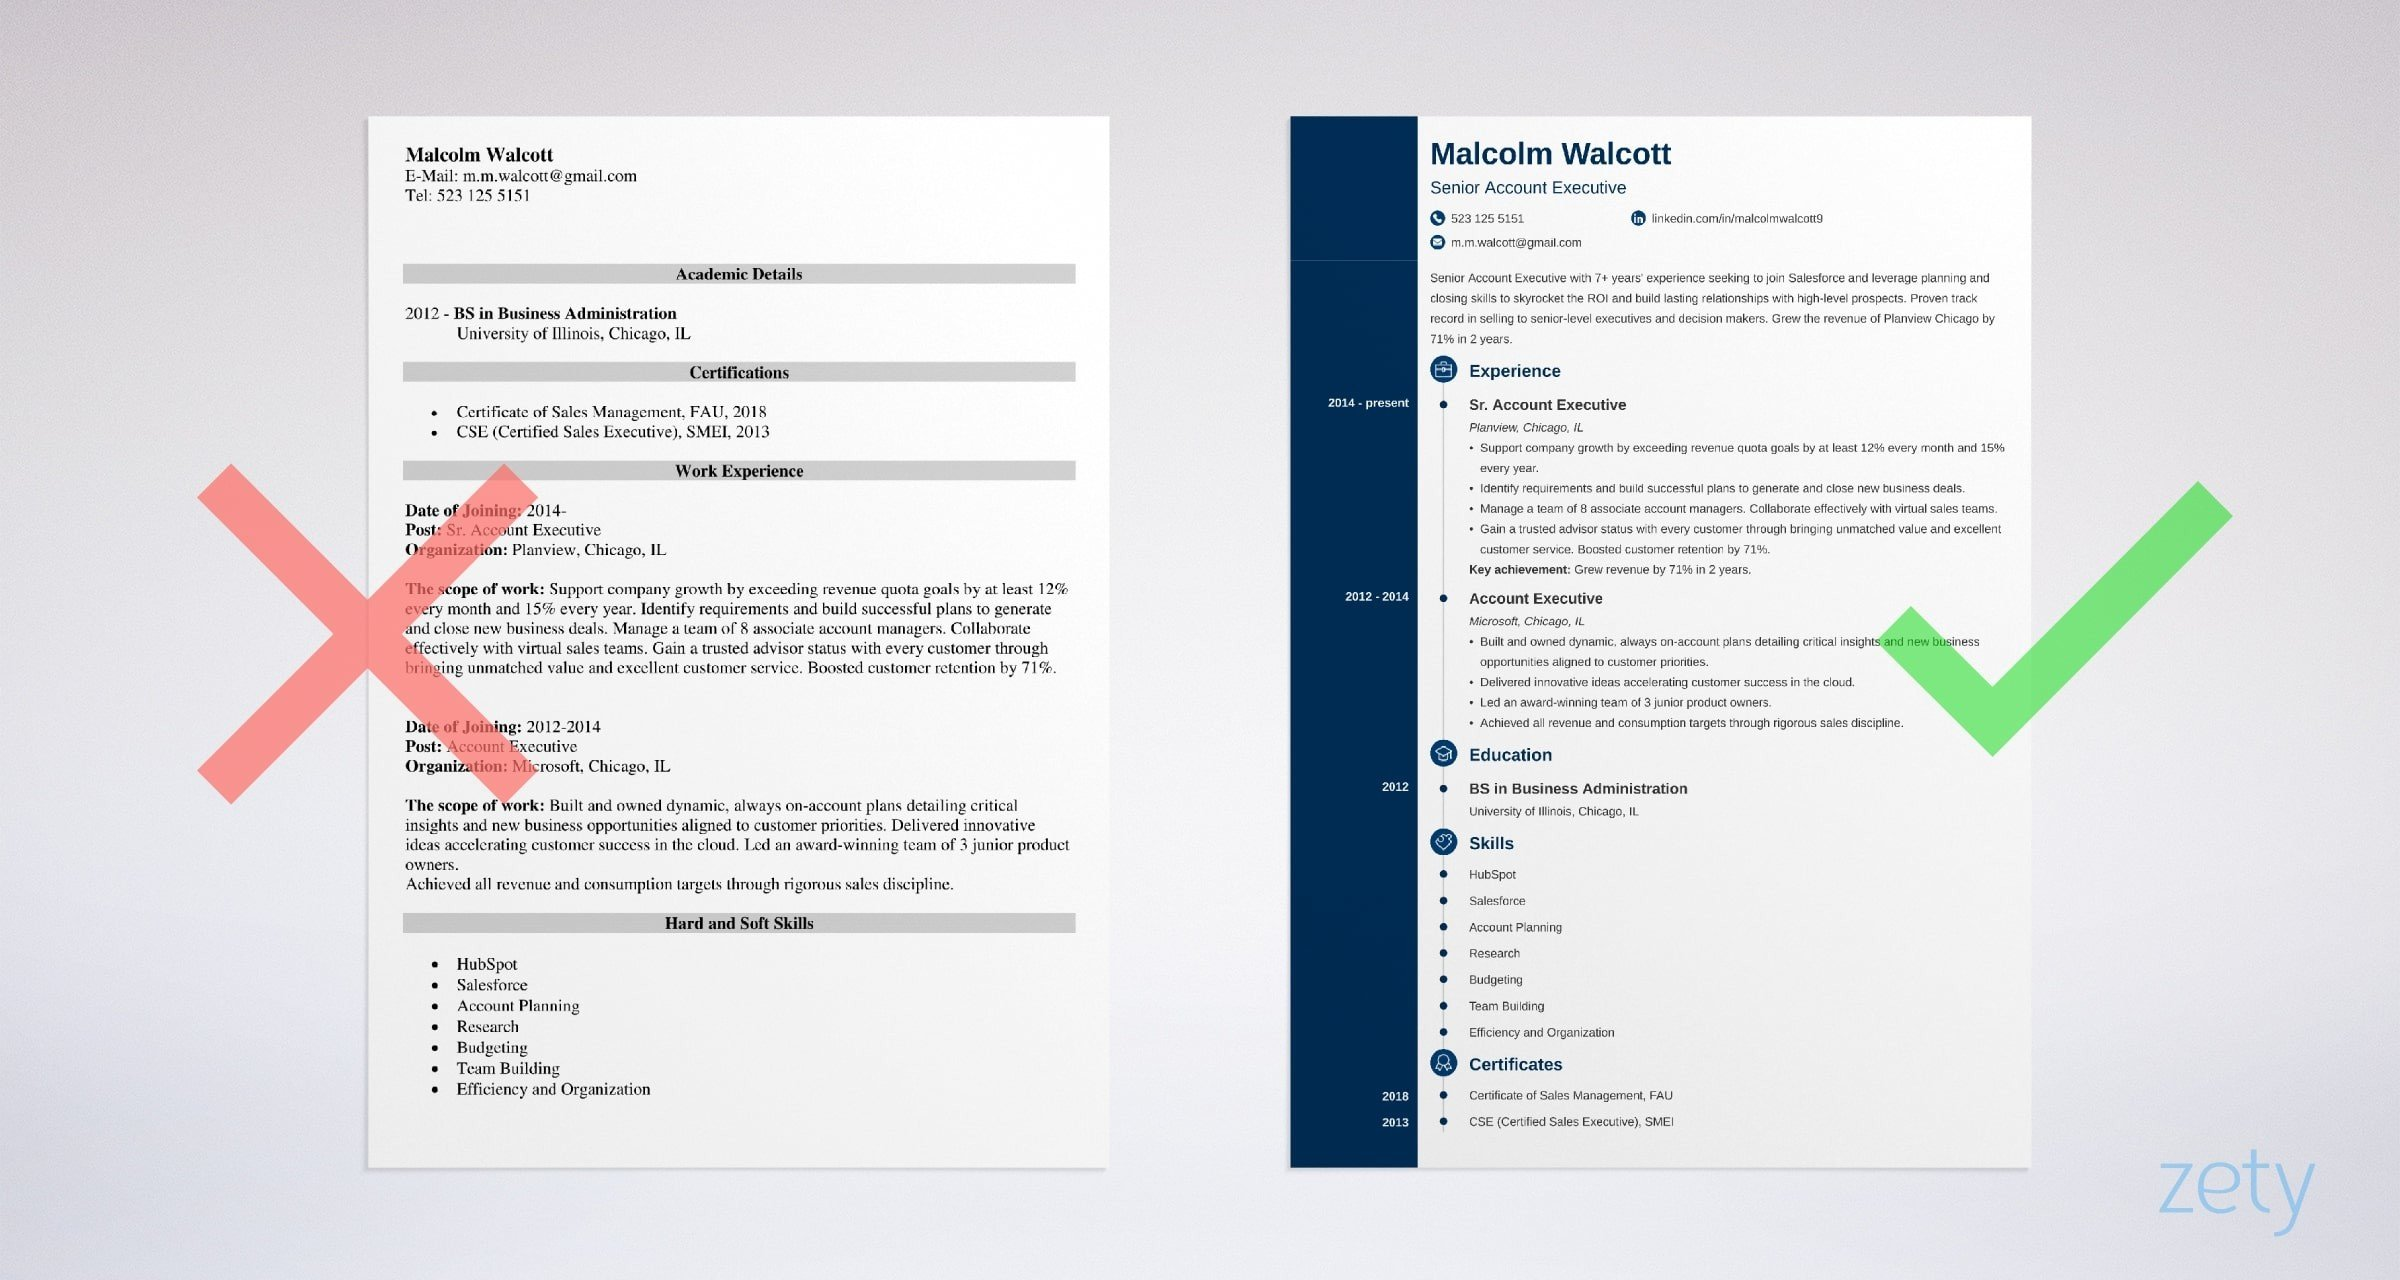 Account Executive Resume Sample Writing Guide 20 Tips